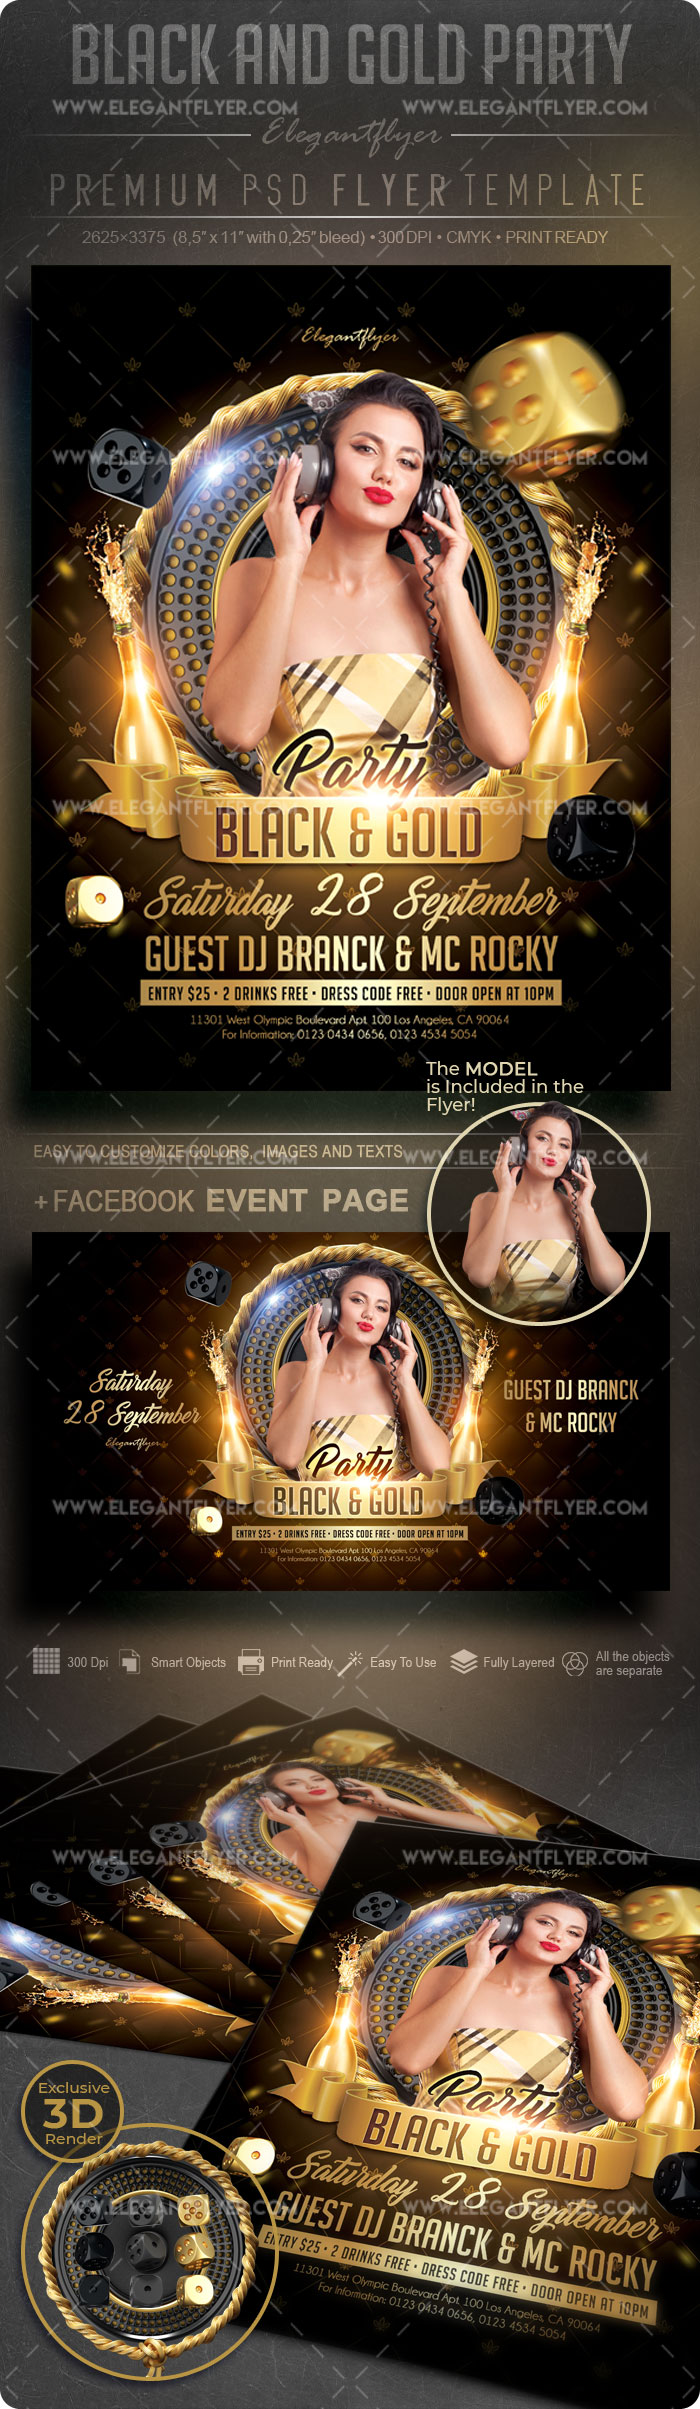 Black and Gold Party – Flyer PSD Template